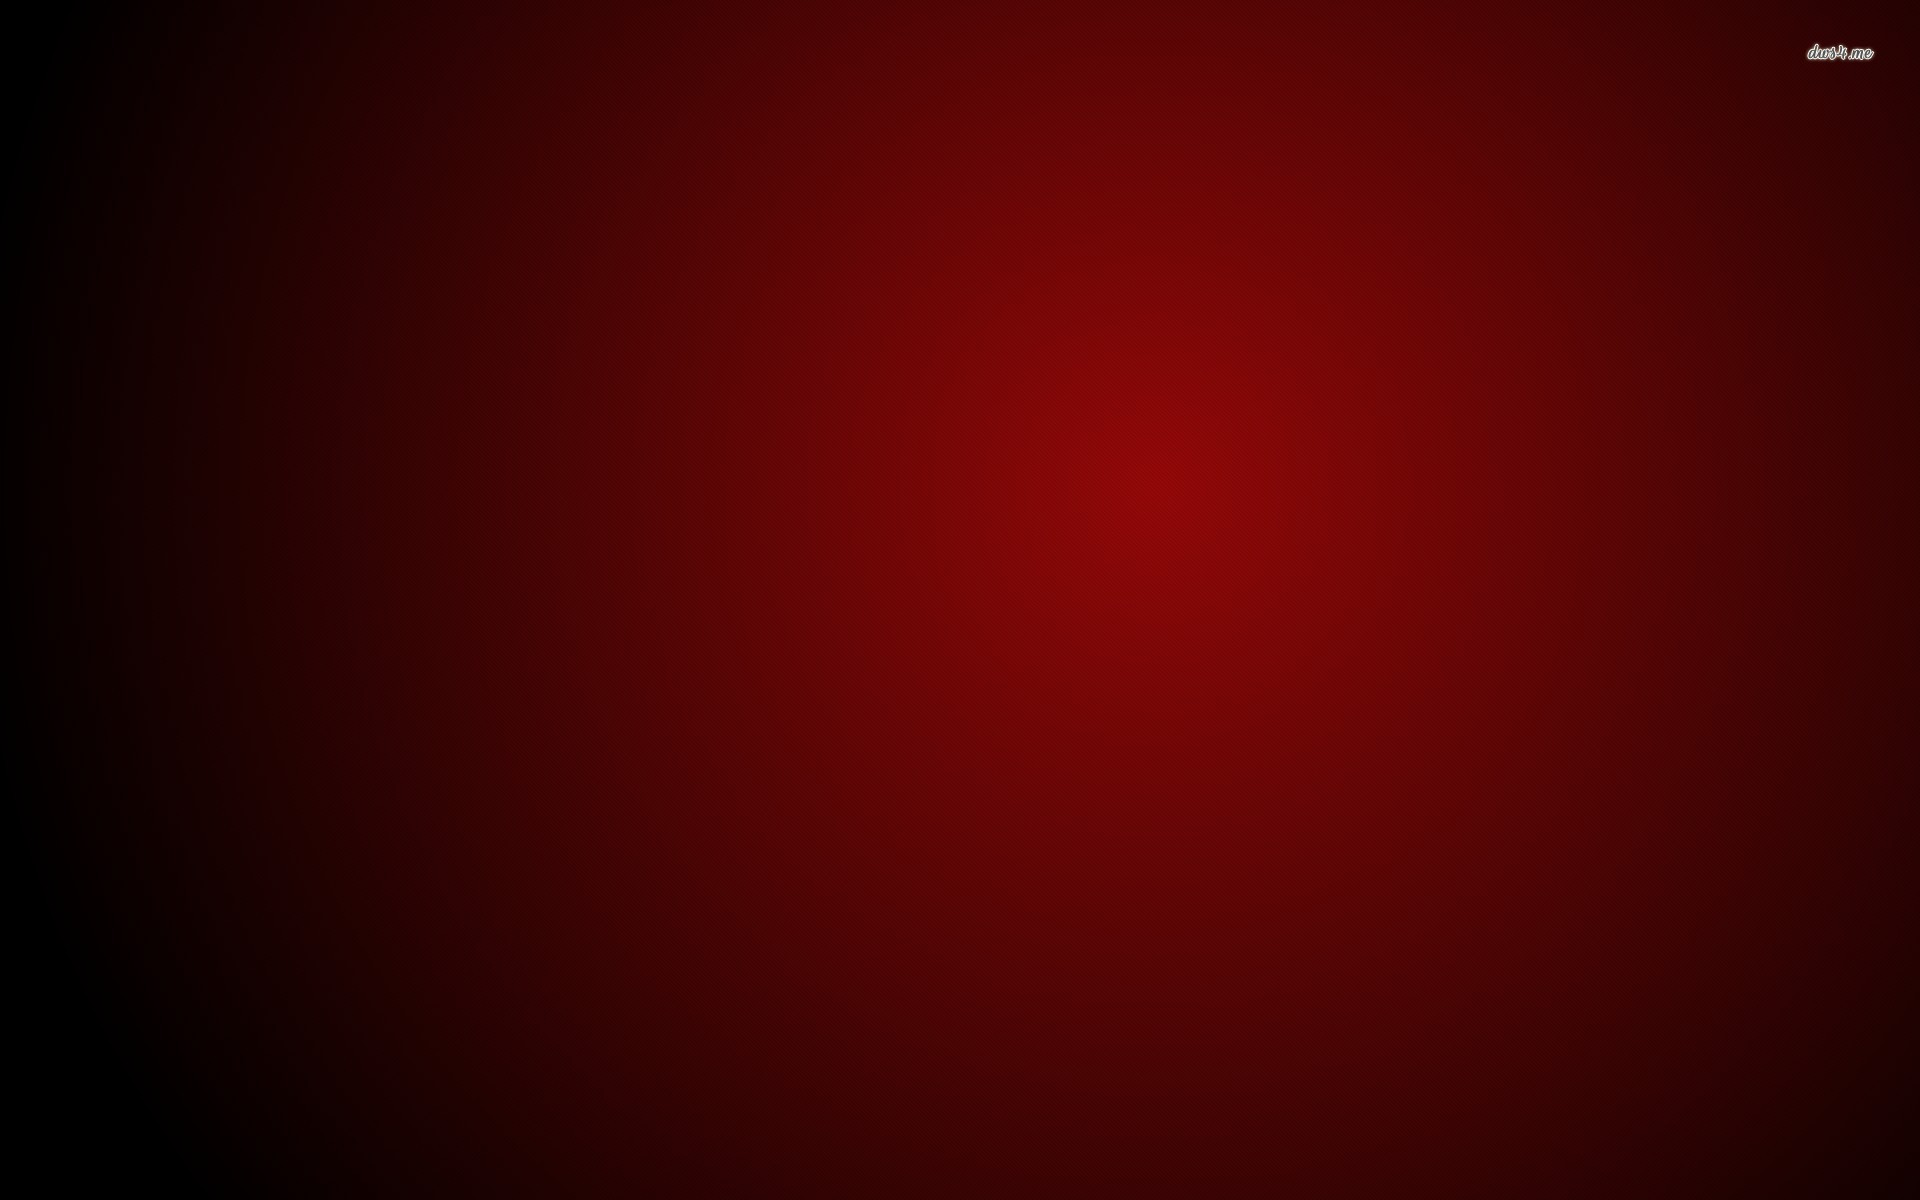 red maroon line background - photo #29